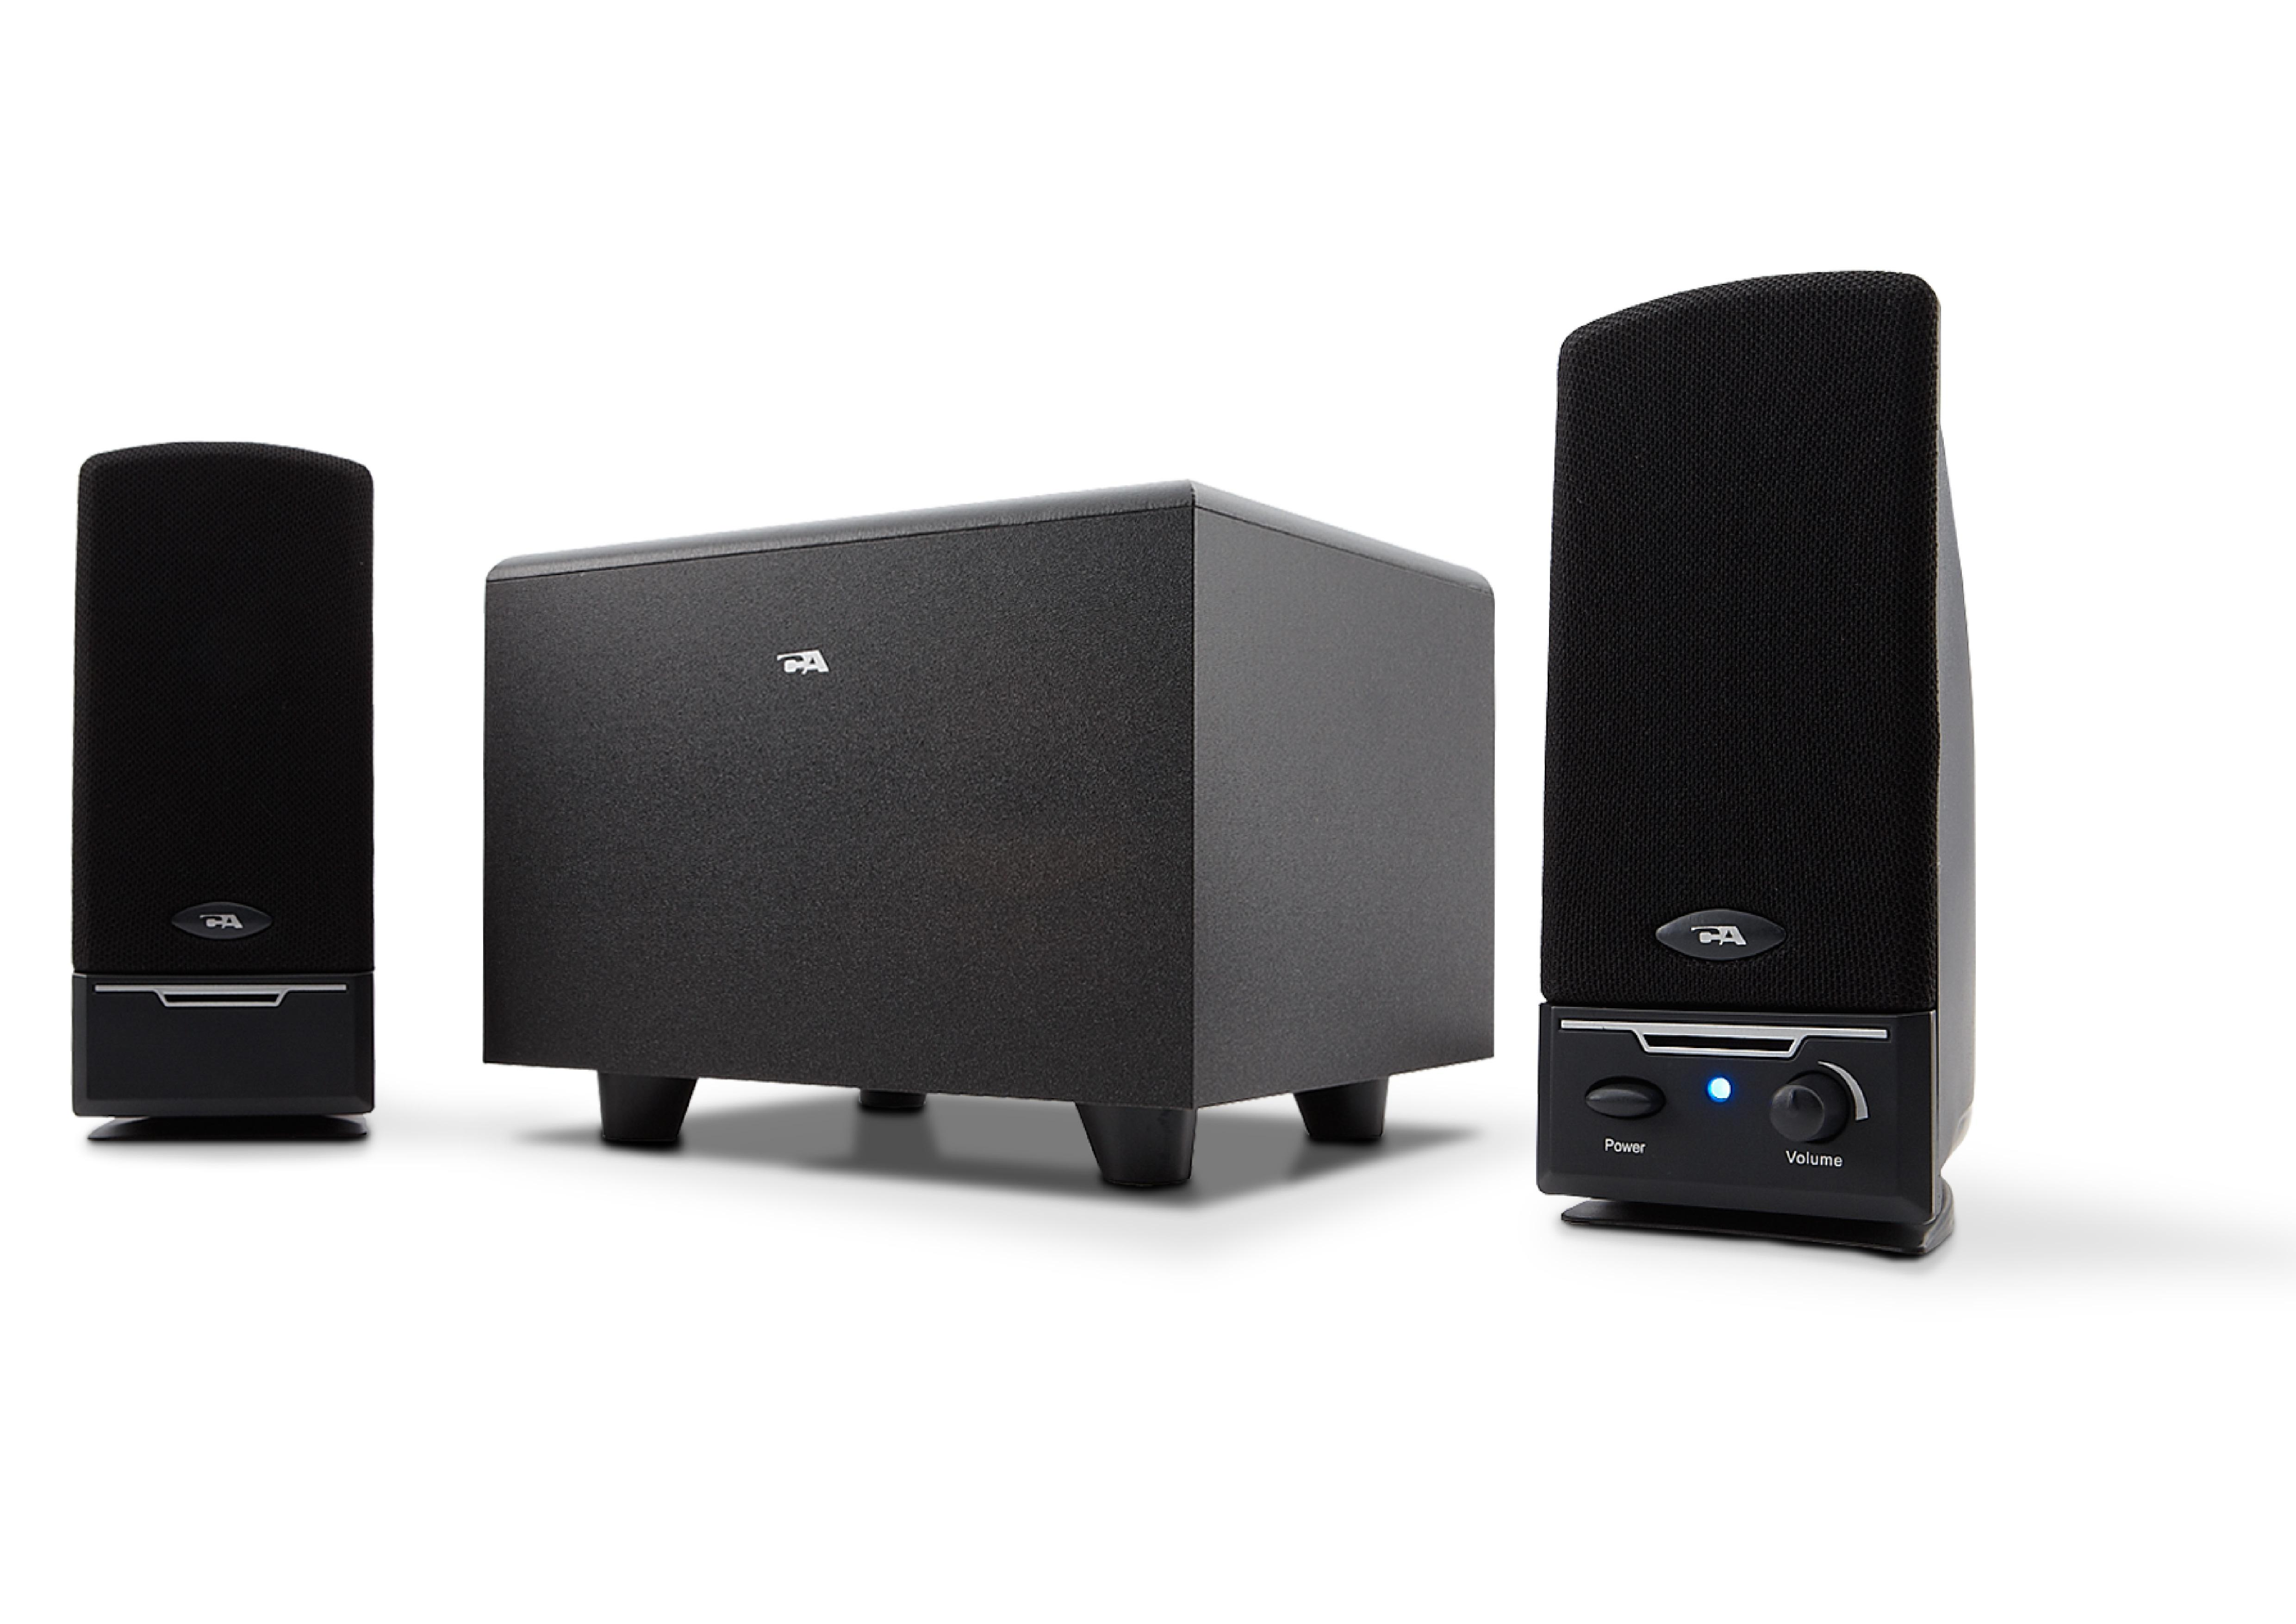 Cyber Acoustics Computer Speakers System with SUB